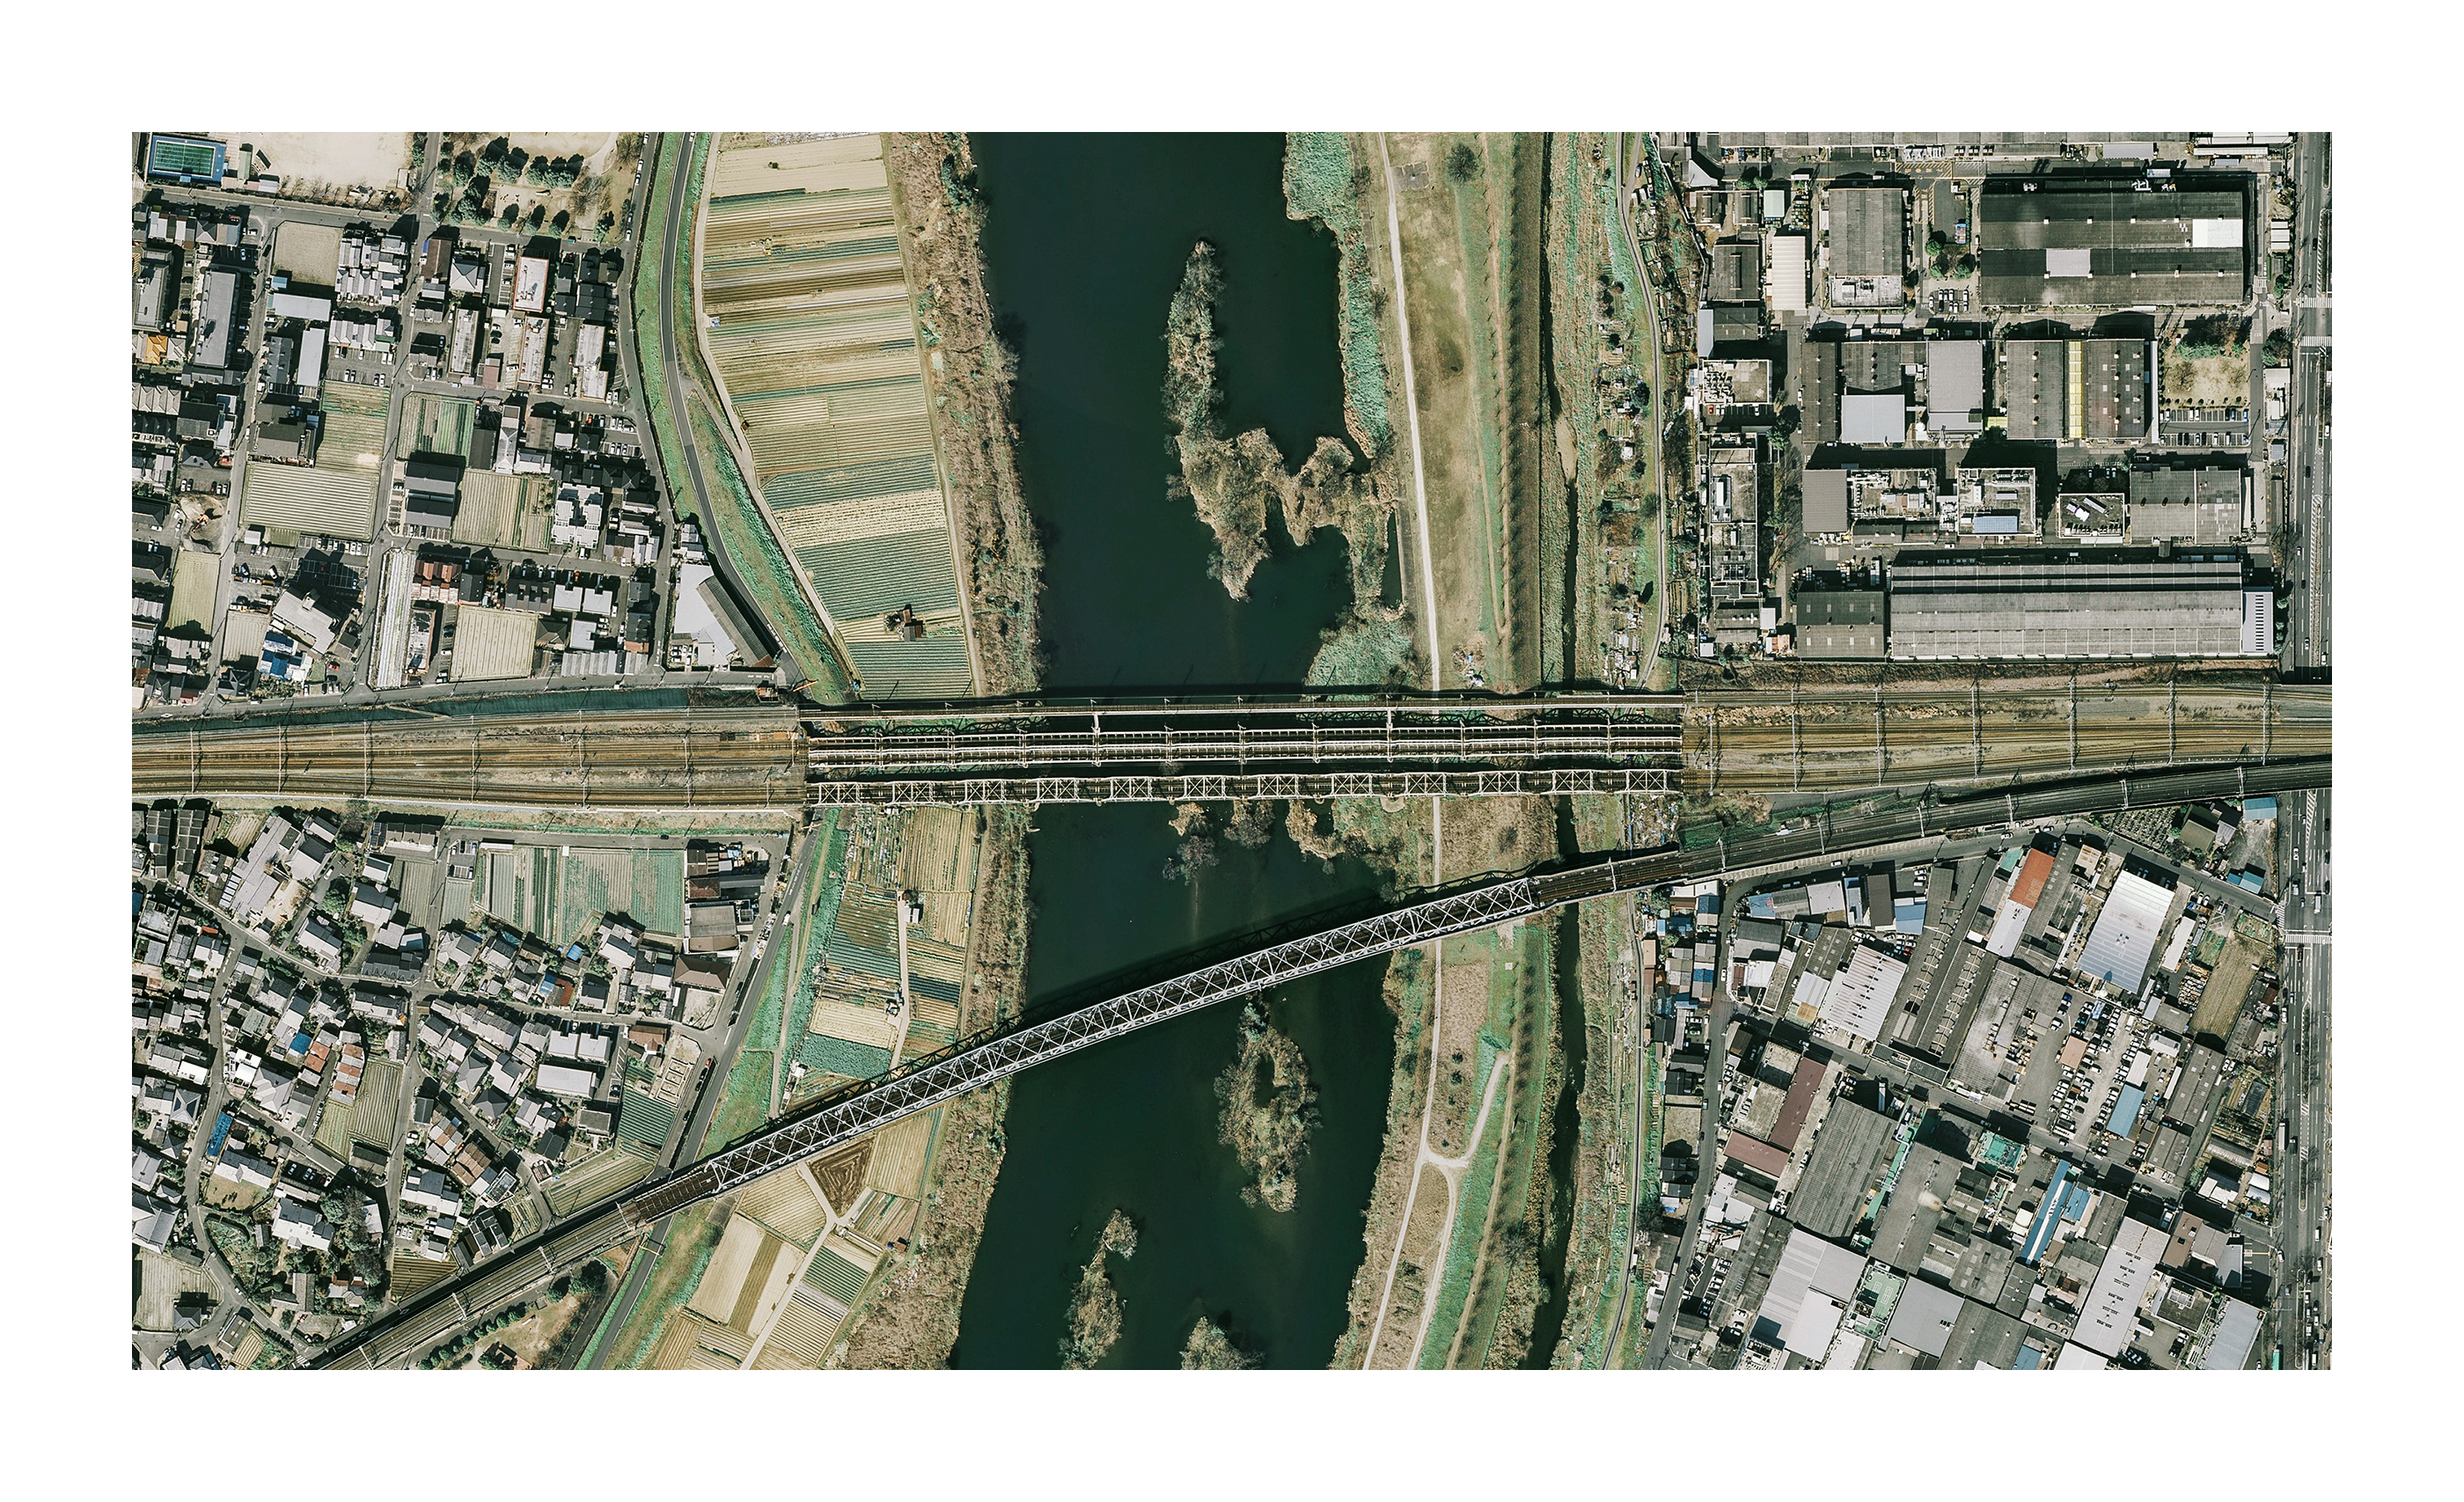 Infrastructure Patterns II